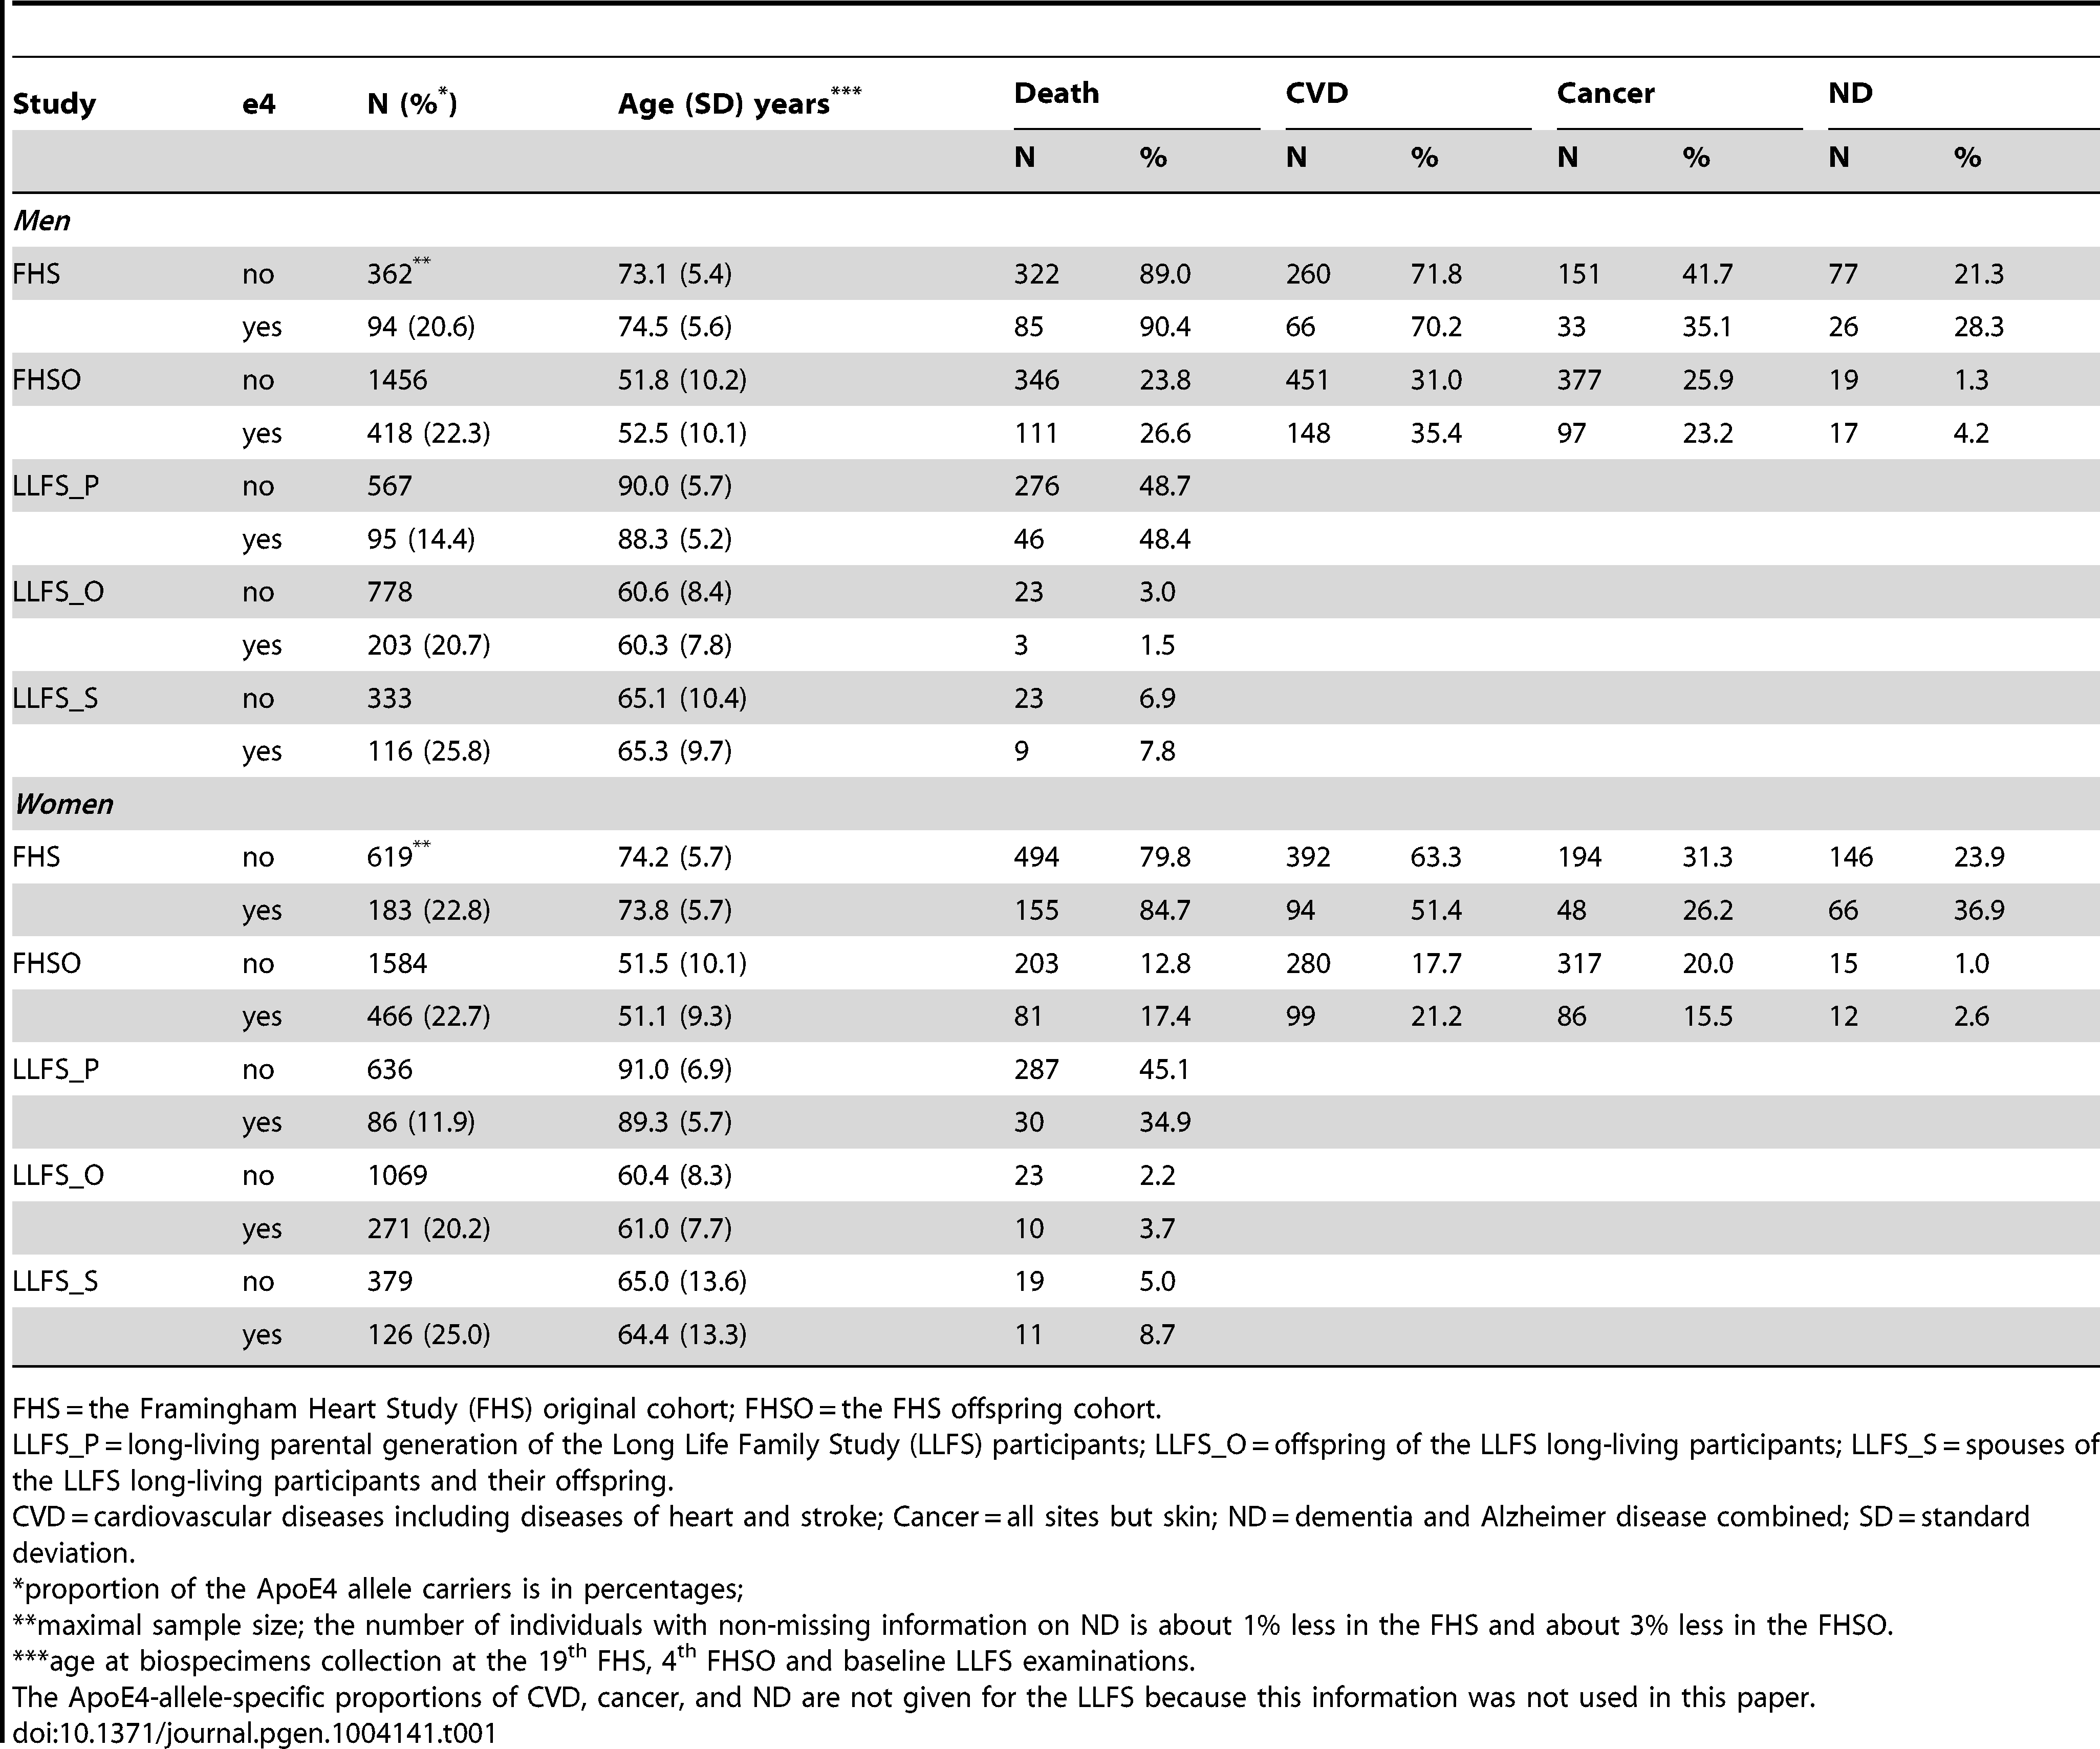 Proportions of the ApoE4 allele carriers, mean age at the time of biospecimens collection, and the allele-specific proportions of deaths, CVD, cancer, and ND for the genotyped participants of the FHS, FHSO, and LLFS.